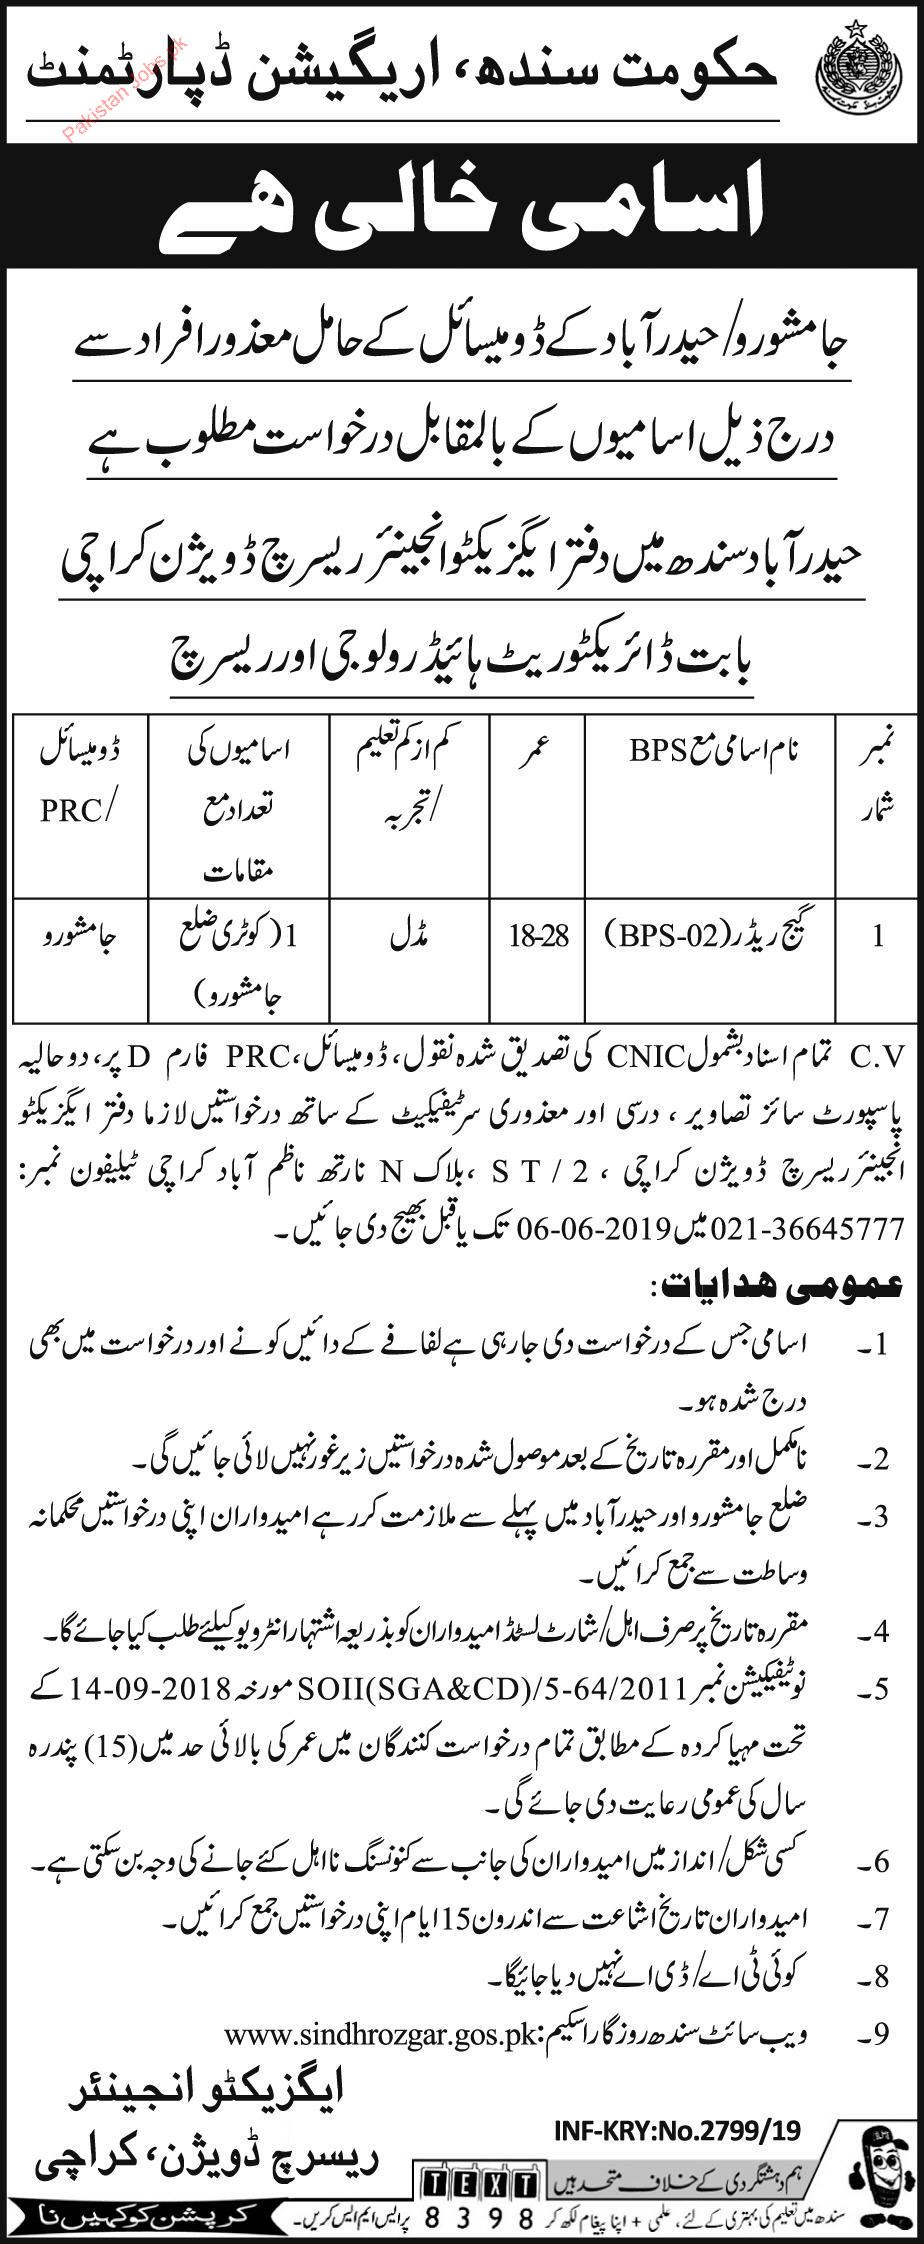 Government Of Sindh Irrigation Department Jamshoro JObs 2019 2019